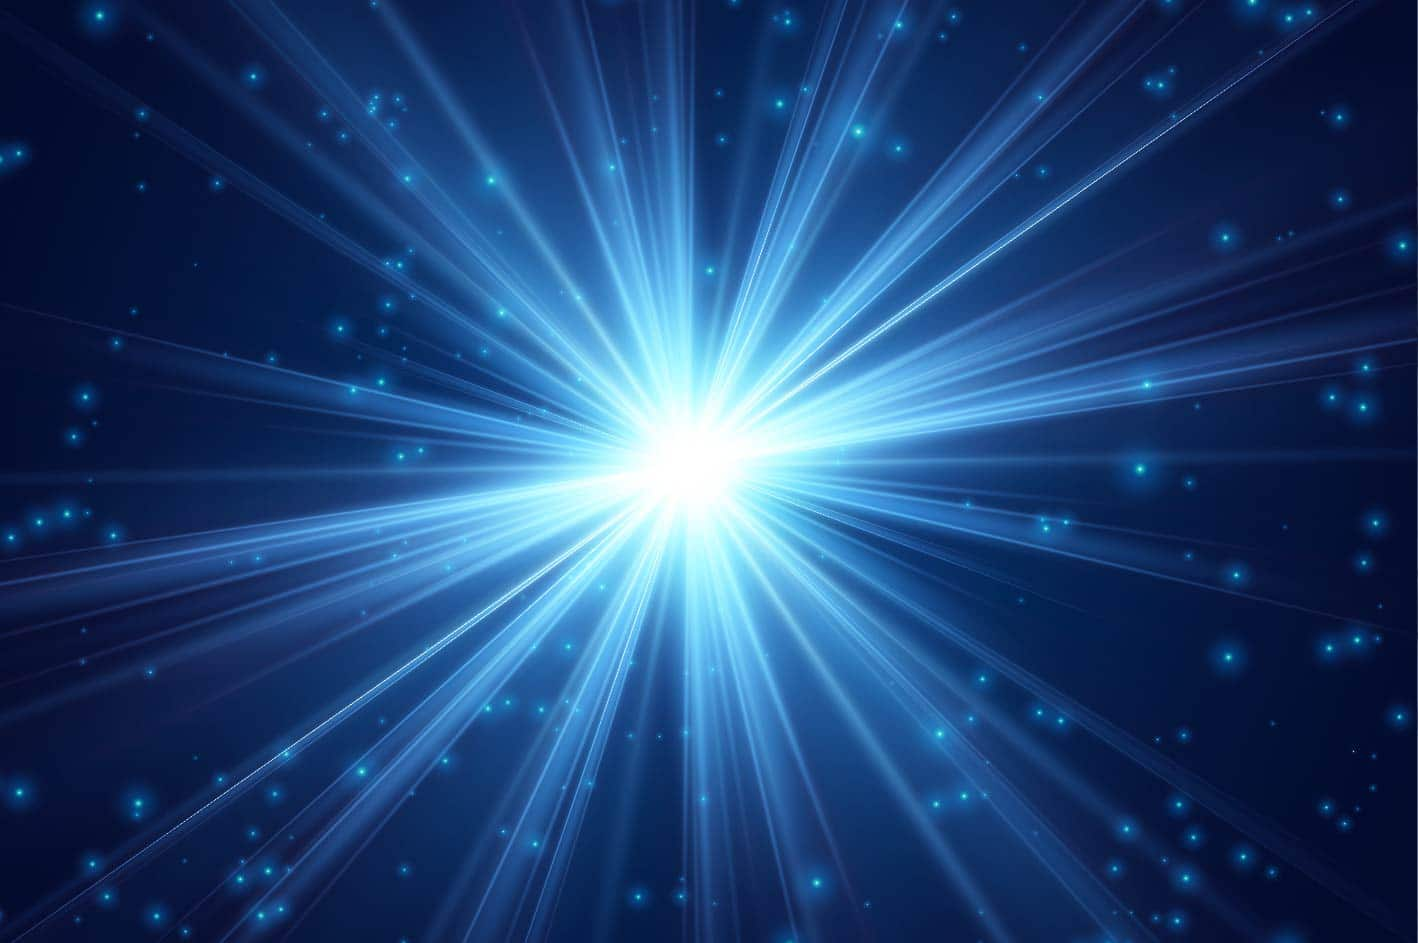 Astral Blue / White Light Beings and Ringing